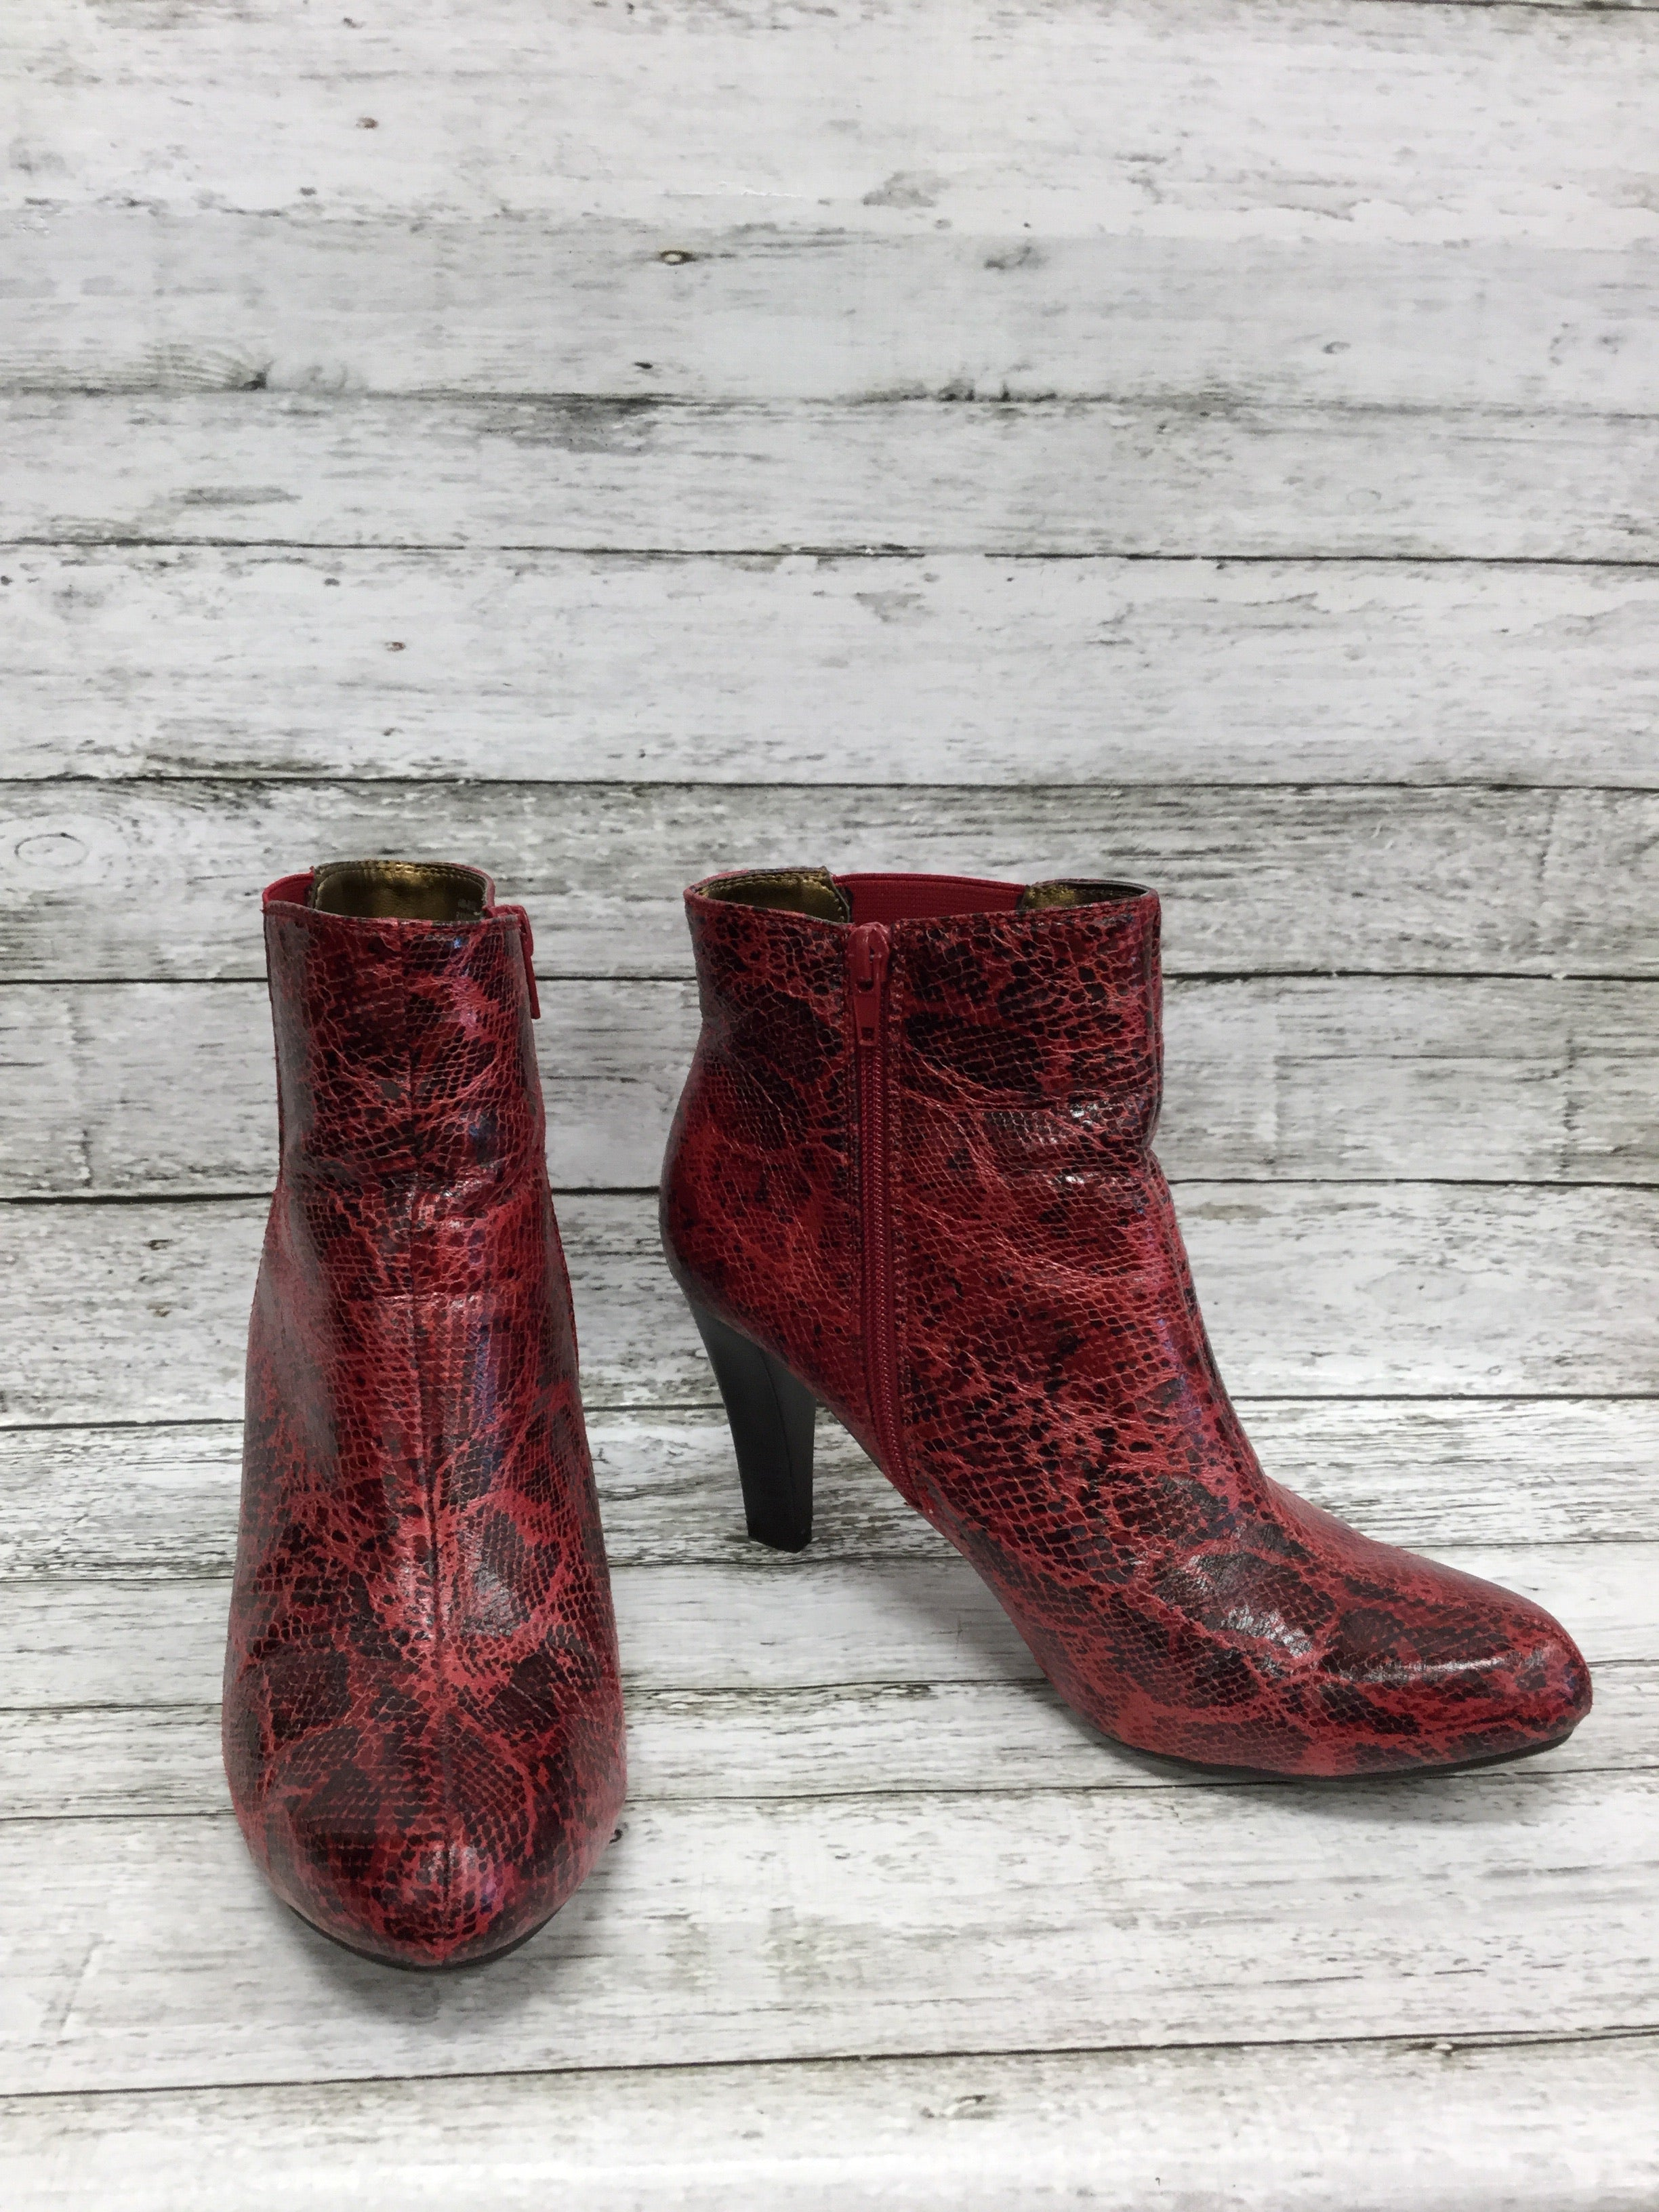 Primary Photo - BRAND: RIALTO , STYLE: BOOTS ANKLE , COLOR: RED , SIZE: 8.5 , SKU: 127-4876-8622, , RED SNAKESKIN HEELED BOOTIES!